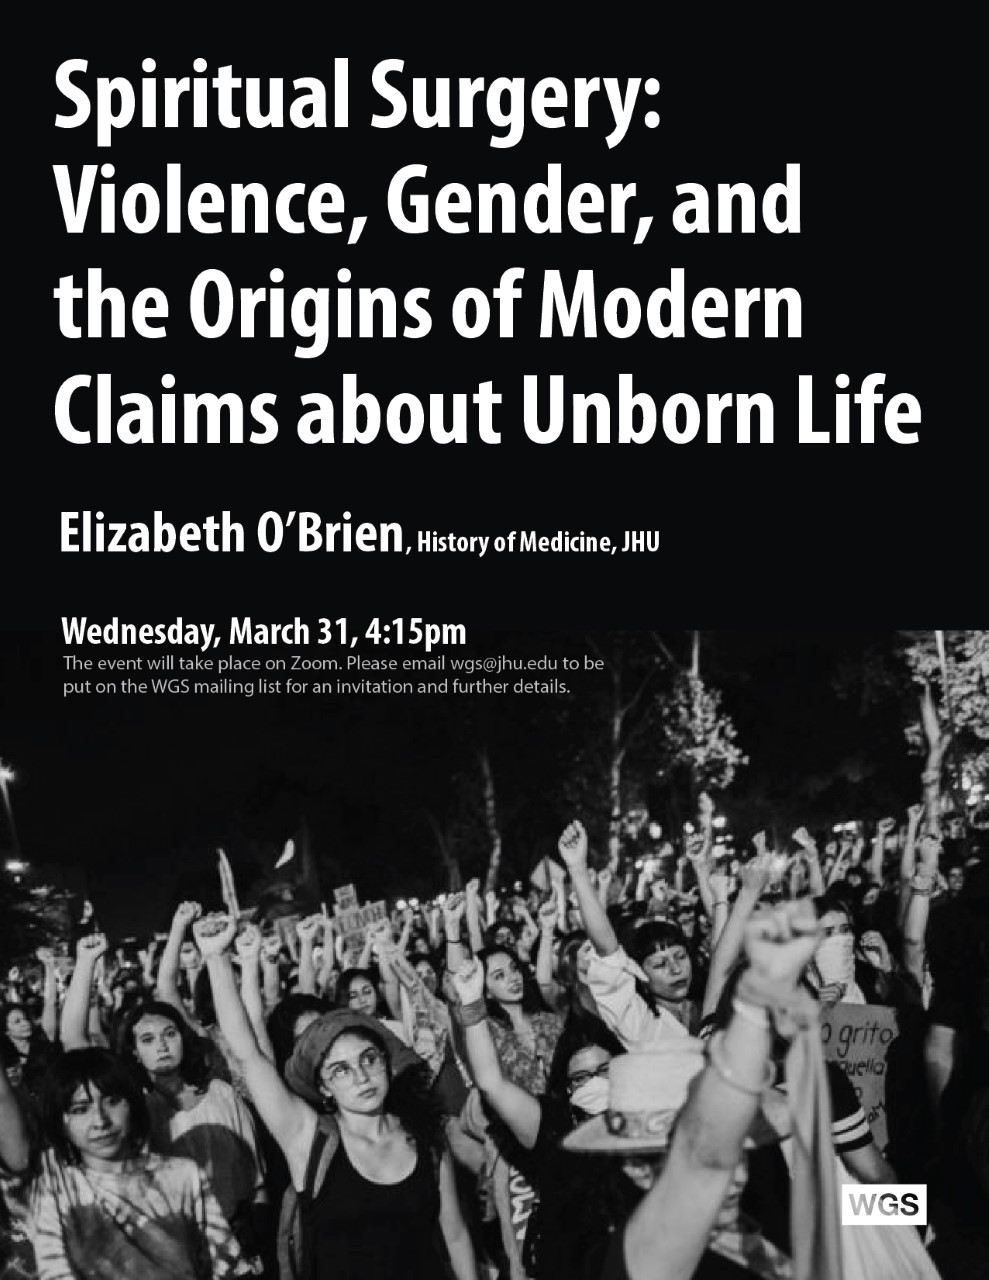 Spiritual Surgery: Violence, Gender, and the Origins of Modern Claims about Unborn Life